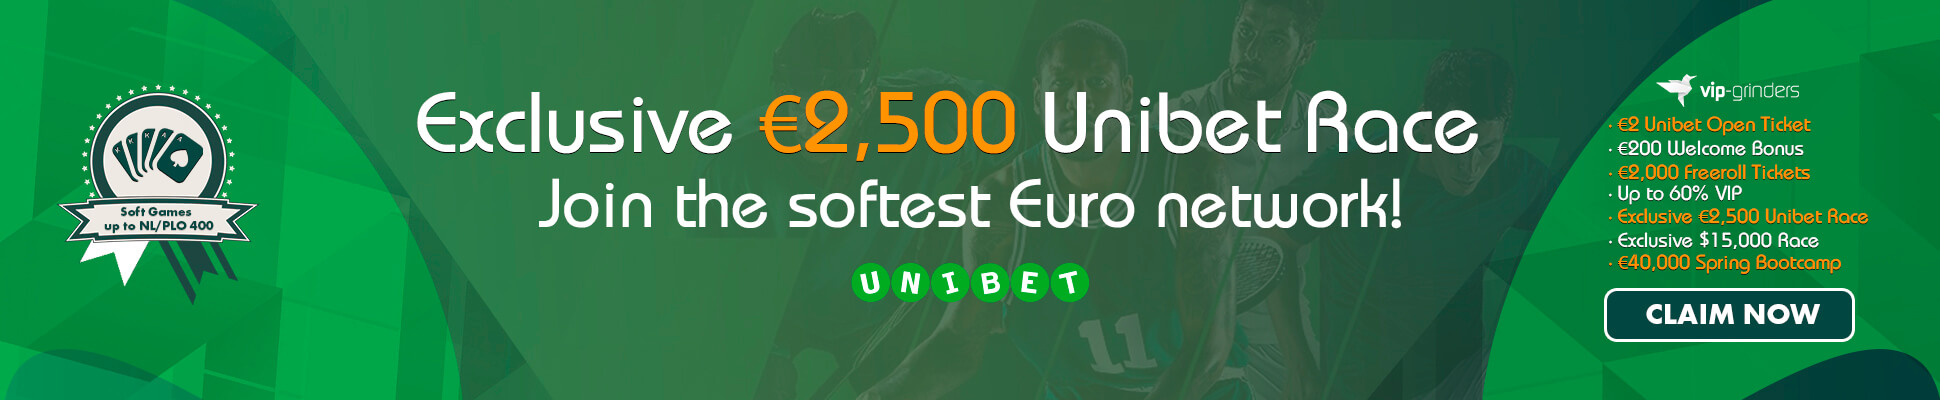 UNIBET SLIDER APRIL ADJUSTED 1940x400